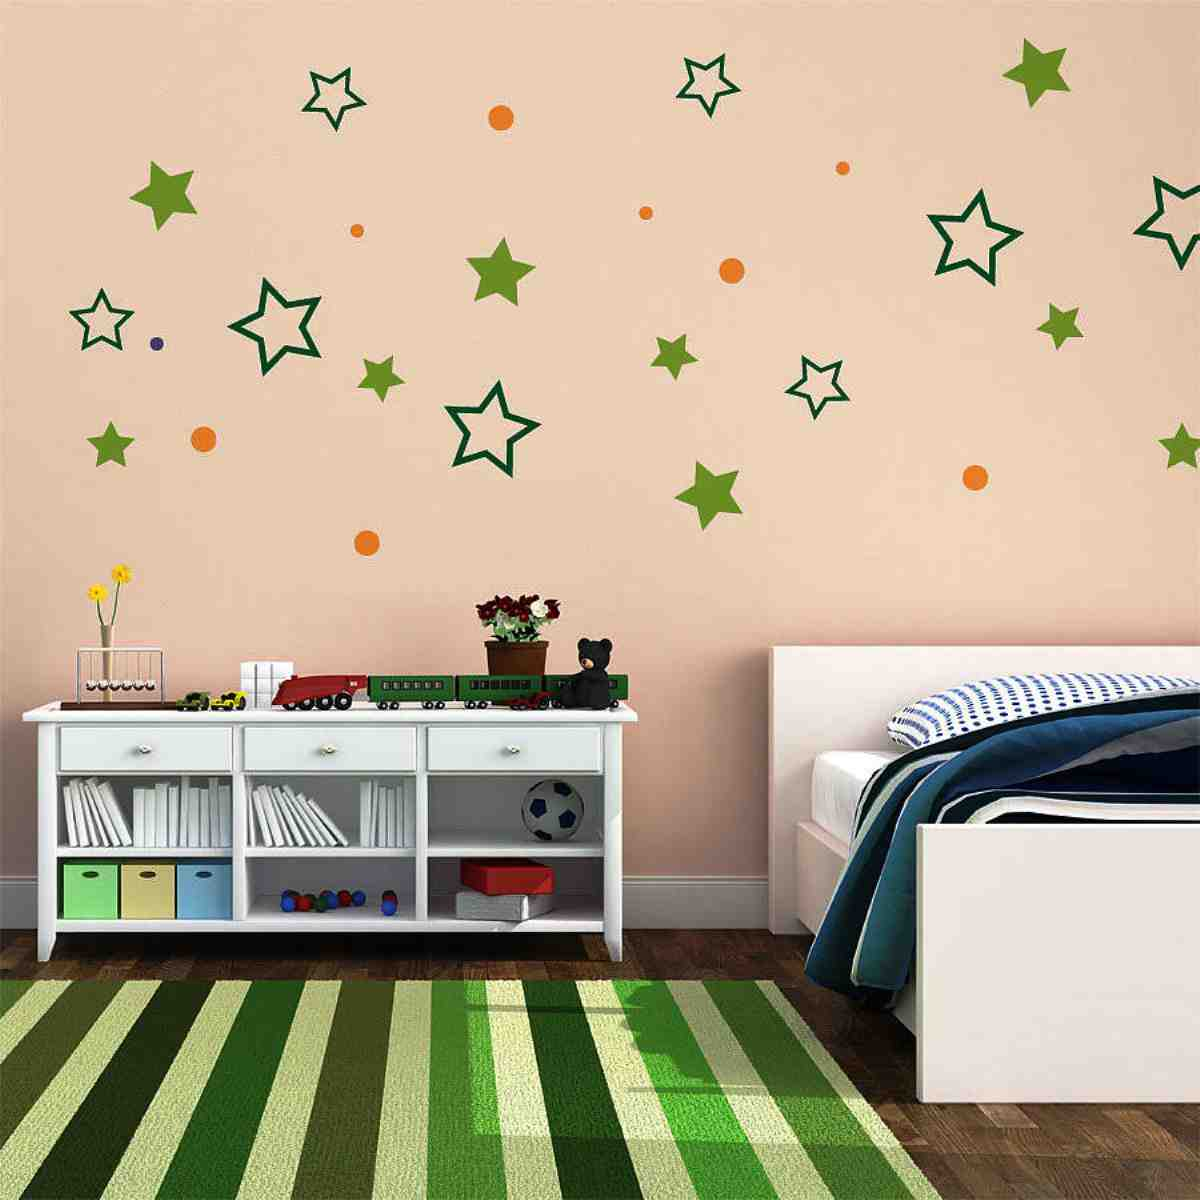 Simple Room Wall Decoration Ideas For Girls Diy Wall Decor Ideas For Bedroom Decor Ideasdecor Ideas